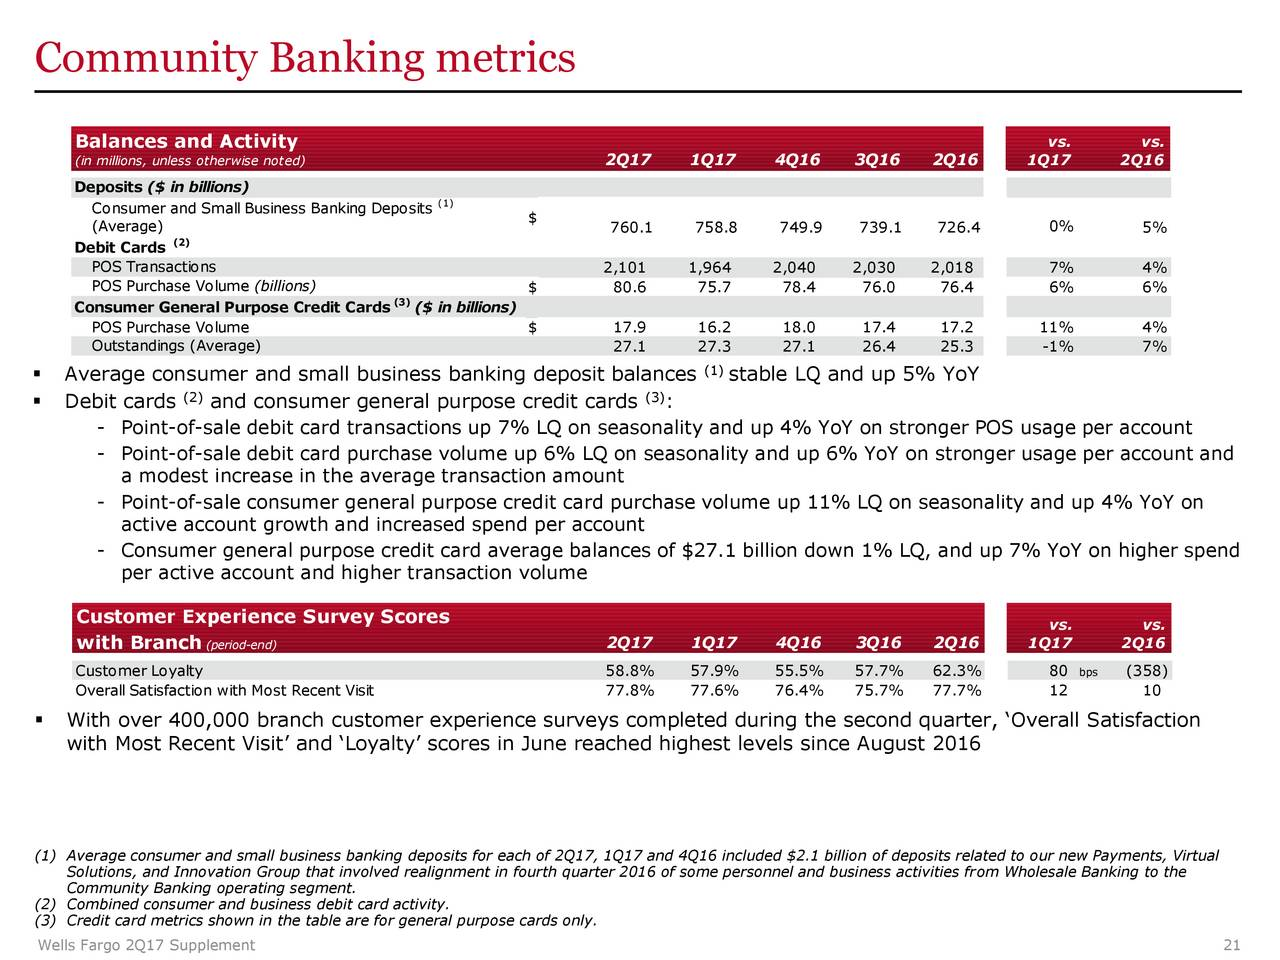 Wells fargo business debit card images free business cards wells fargo co 2017 q2 results earnings call slides wells wells fargo co 2017 q2 results magicingreecefo Choice Image